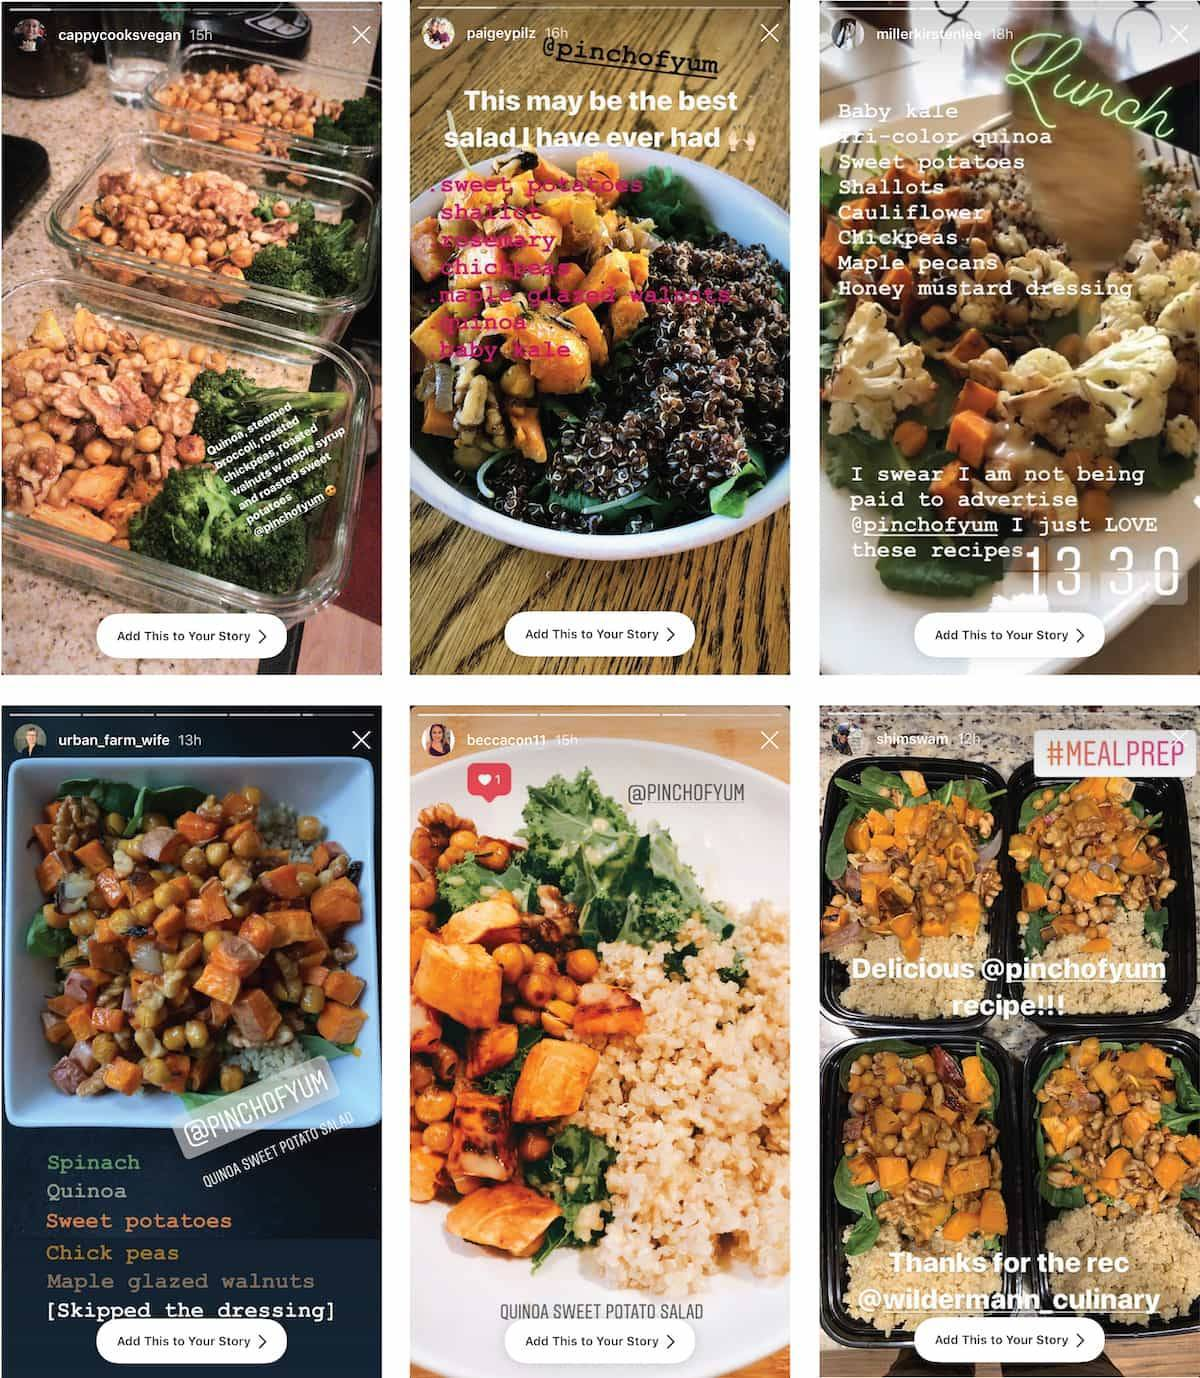 Quinoa sweet potato salad in bowls and trays.